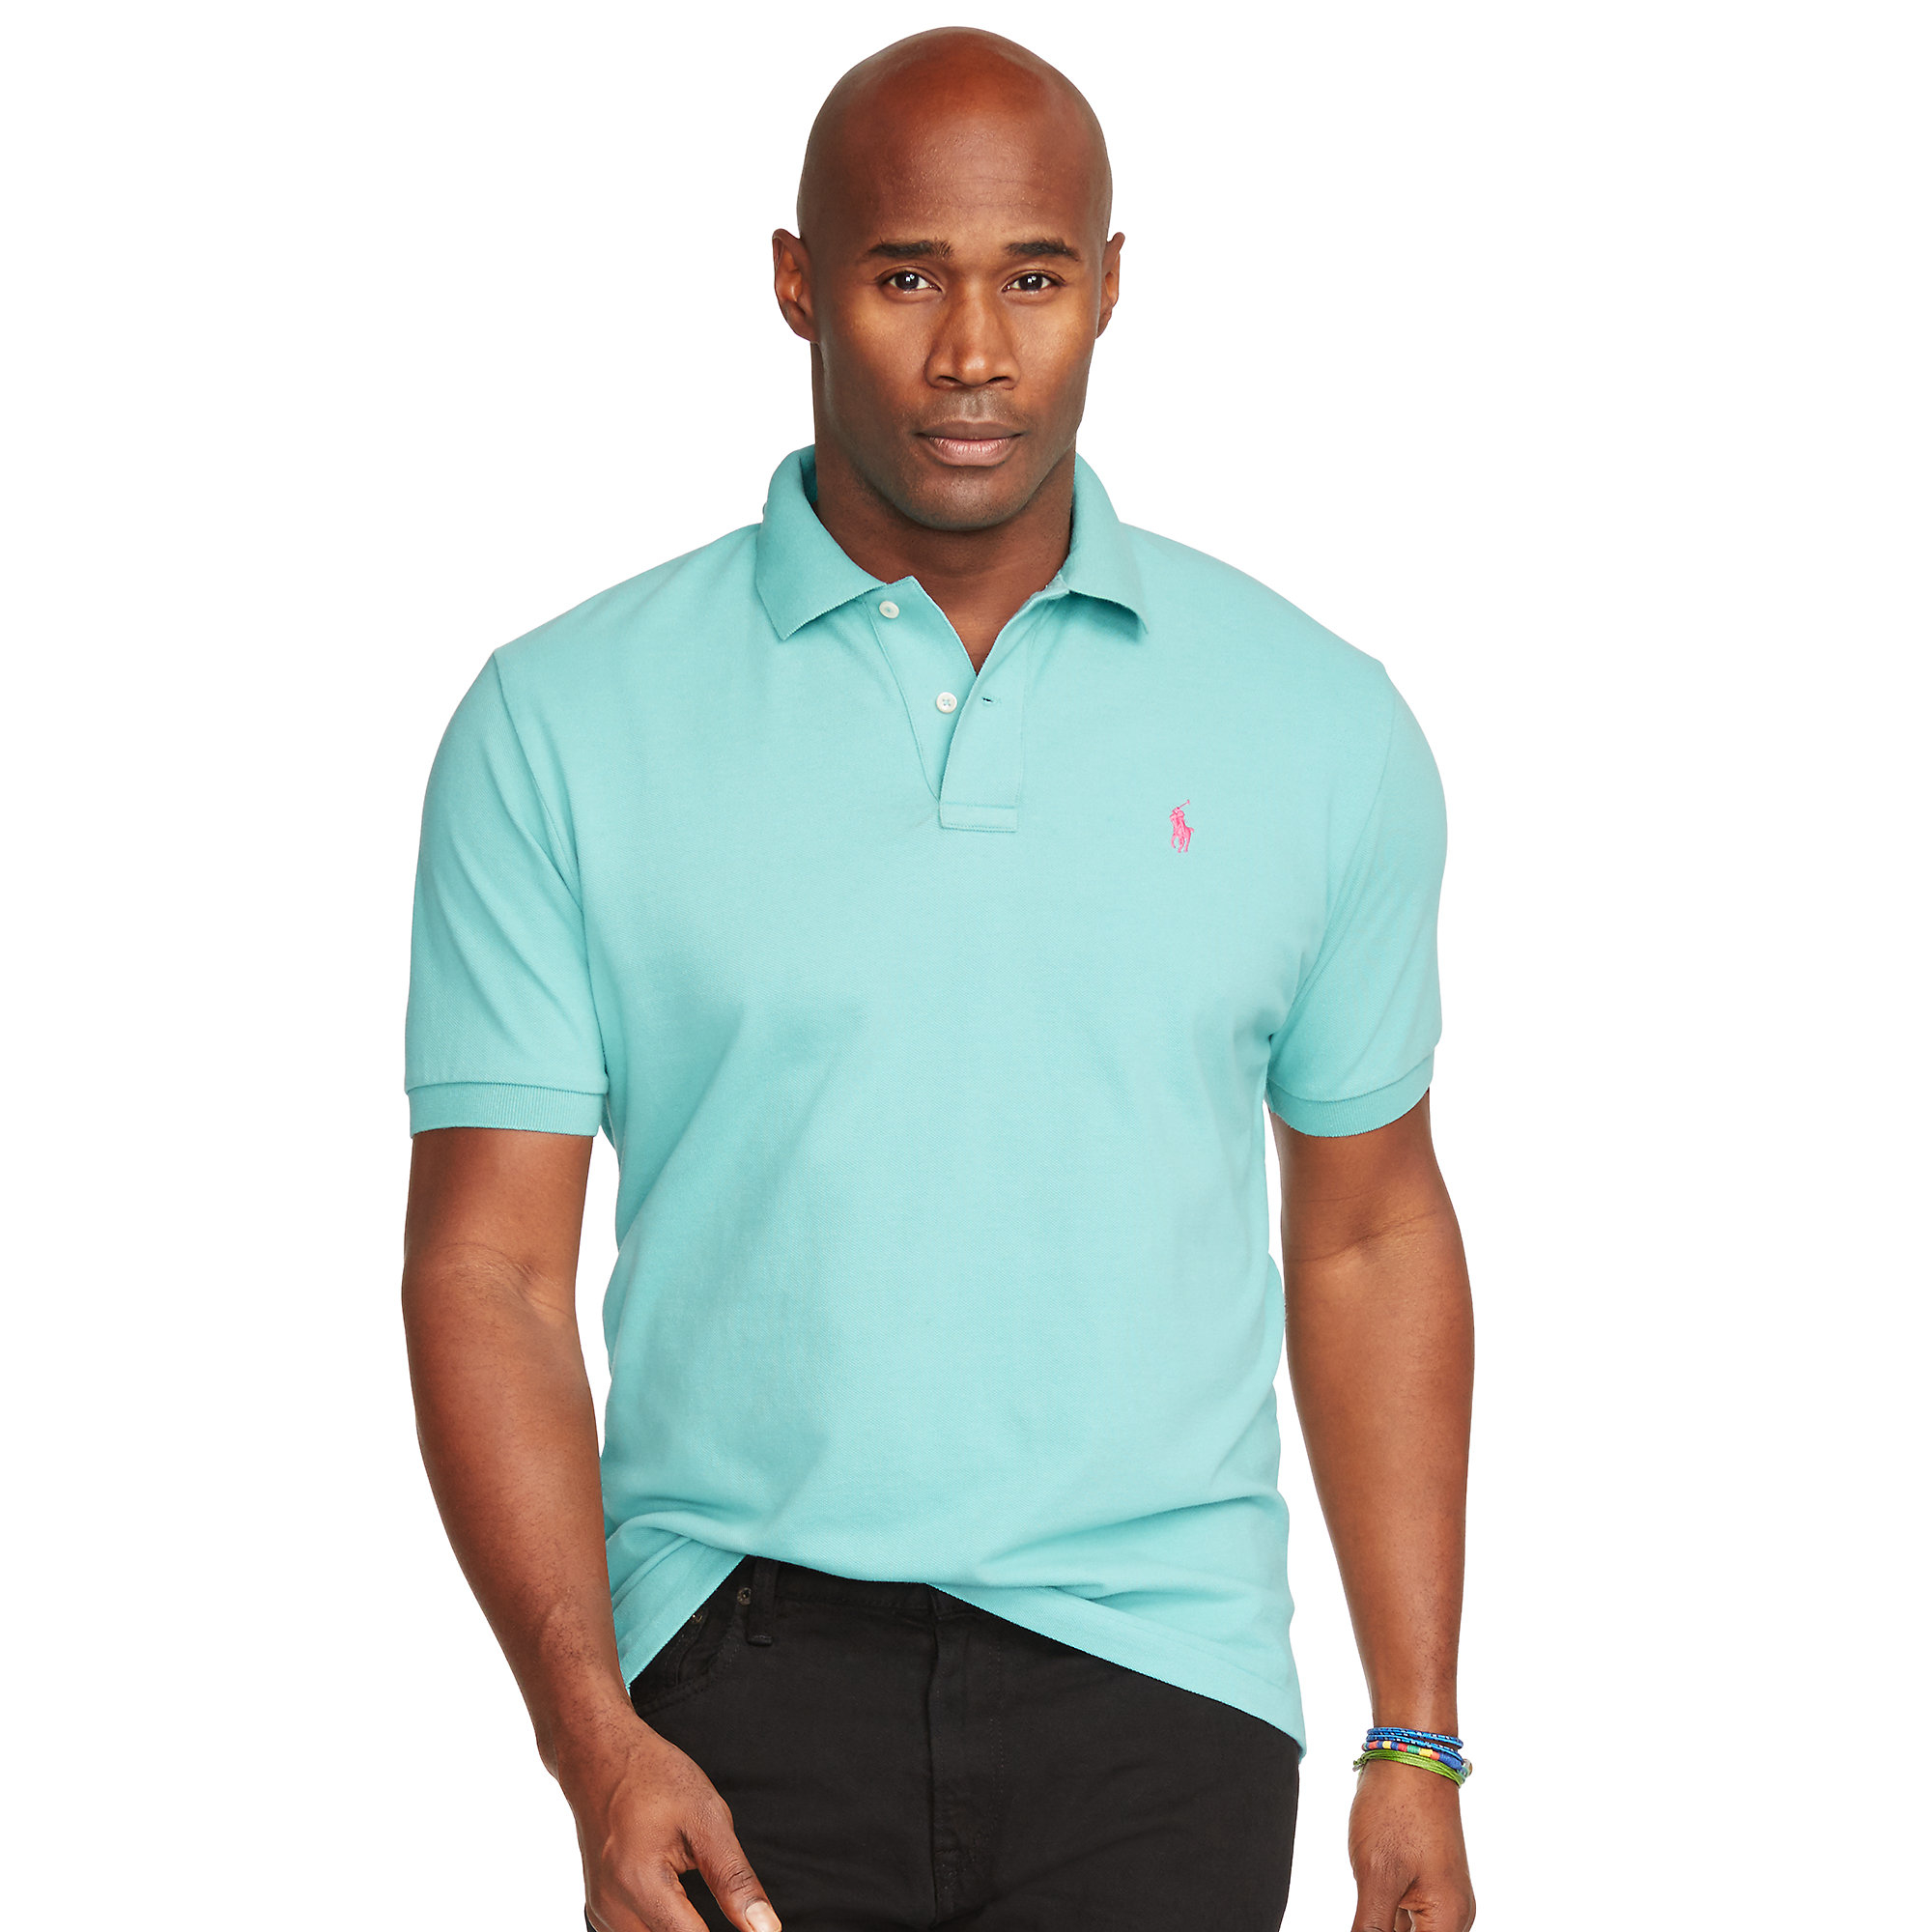 Pink Classic Shirt Fit Lyst Men In For Blue Pony Polo Mesh cF1JKlT